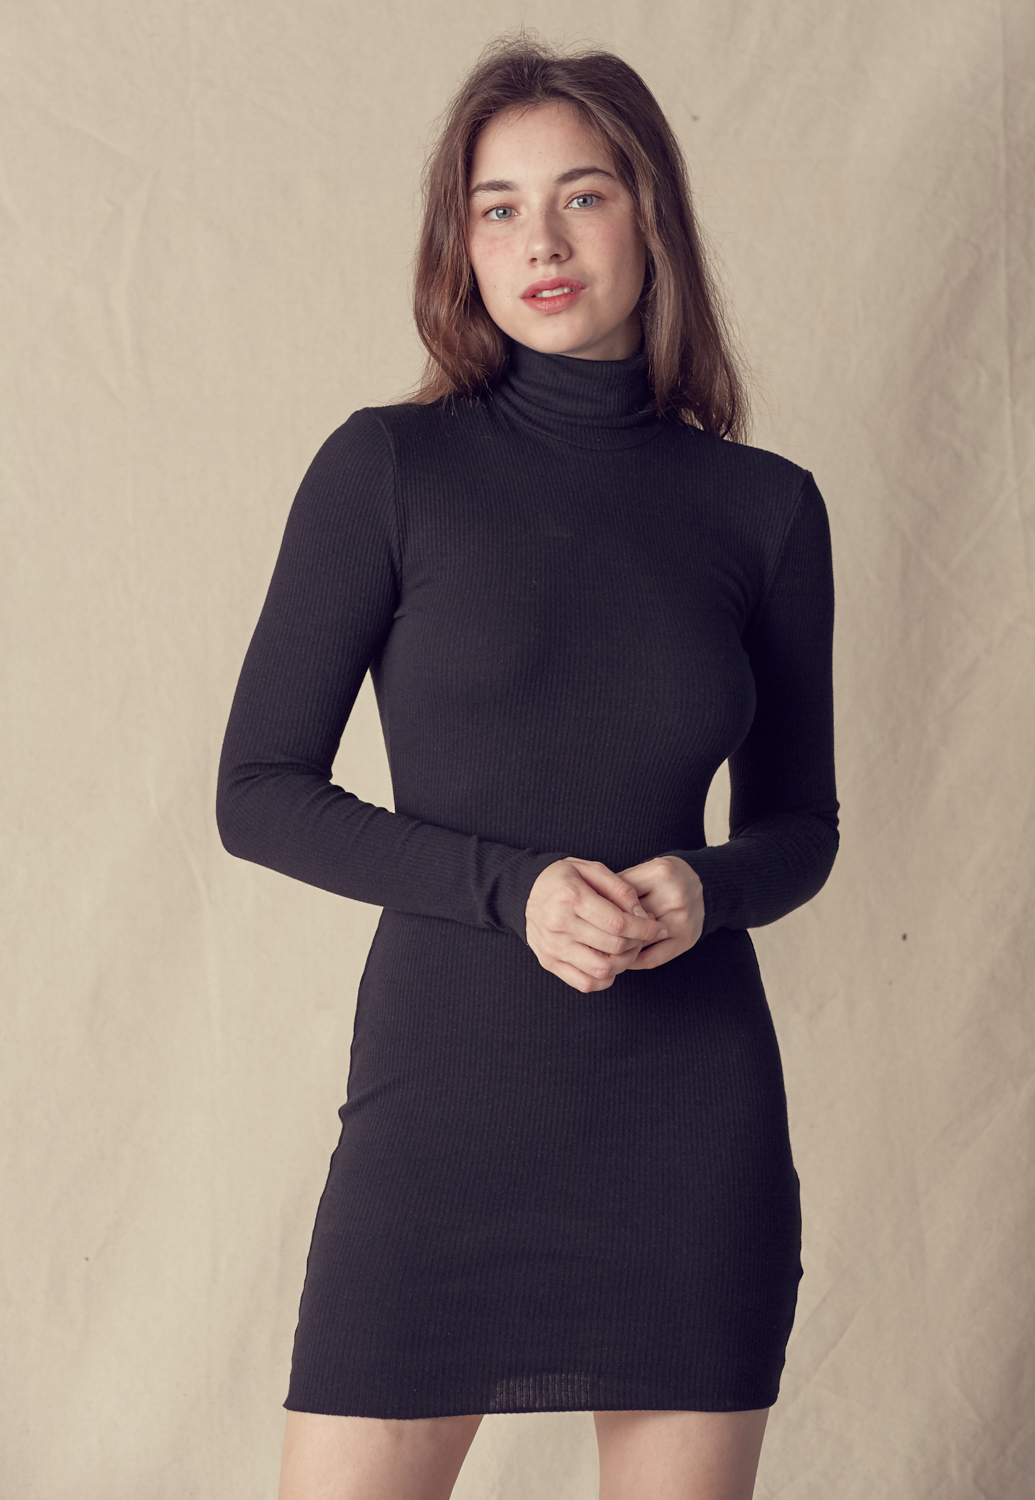 Turtleneck Knit Midi Dress